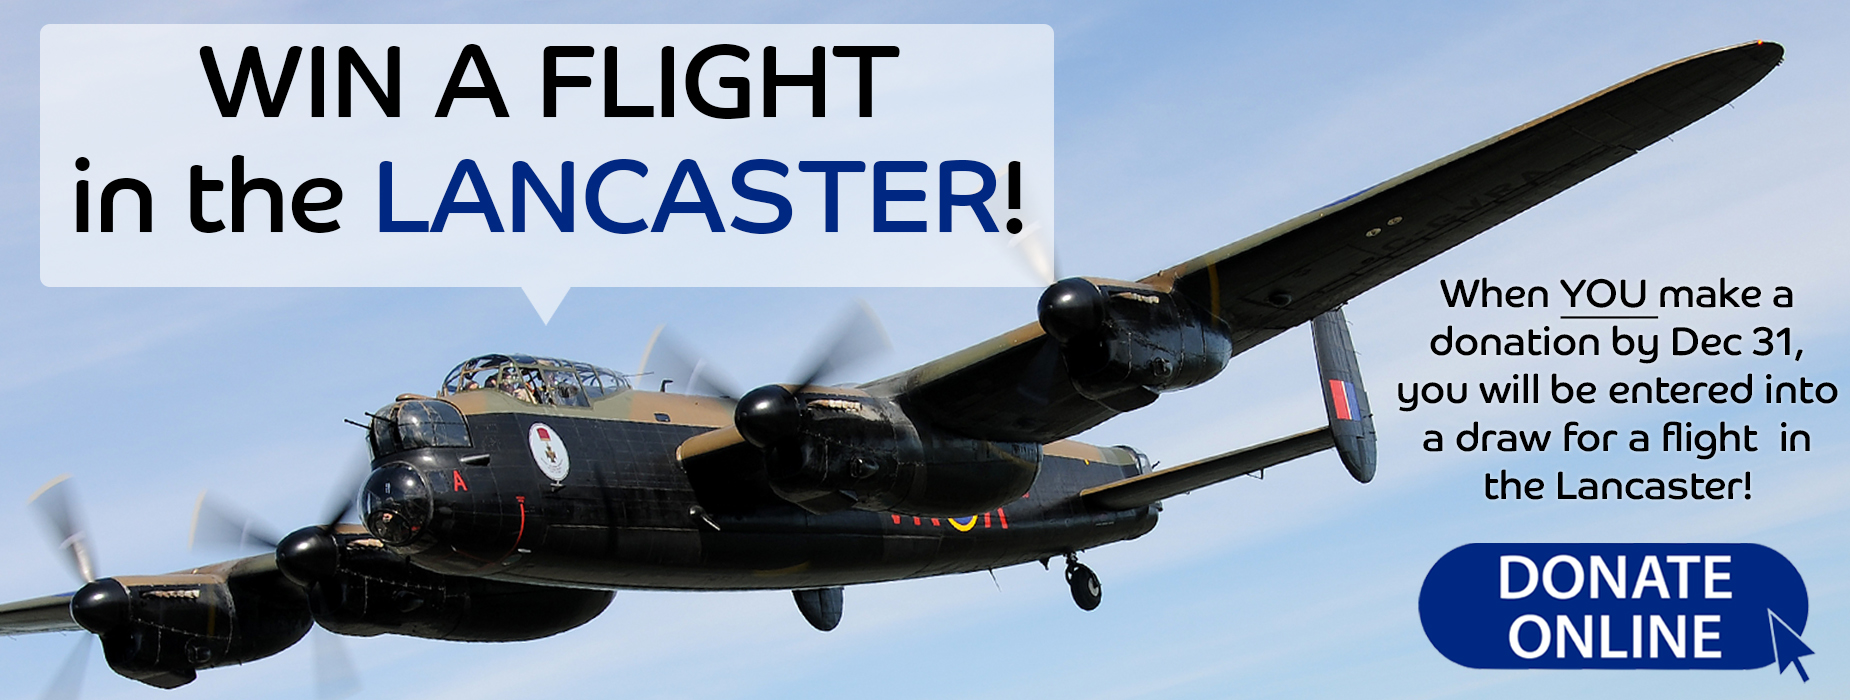 Poster for - Win a Flight in the Lancaster!